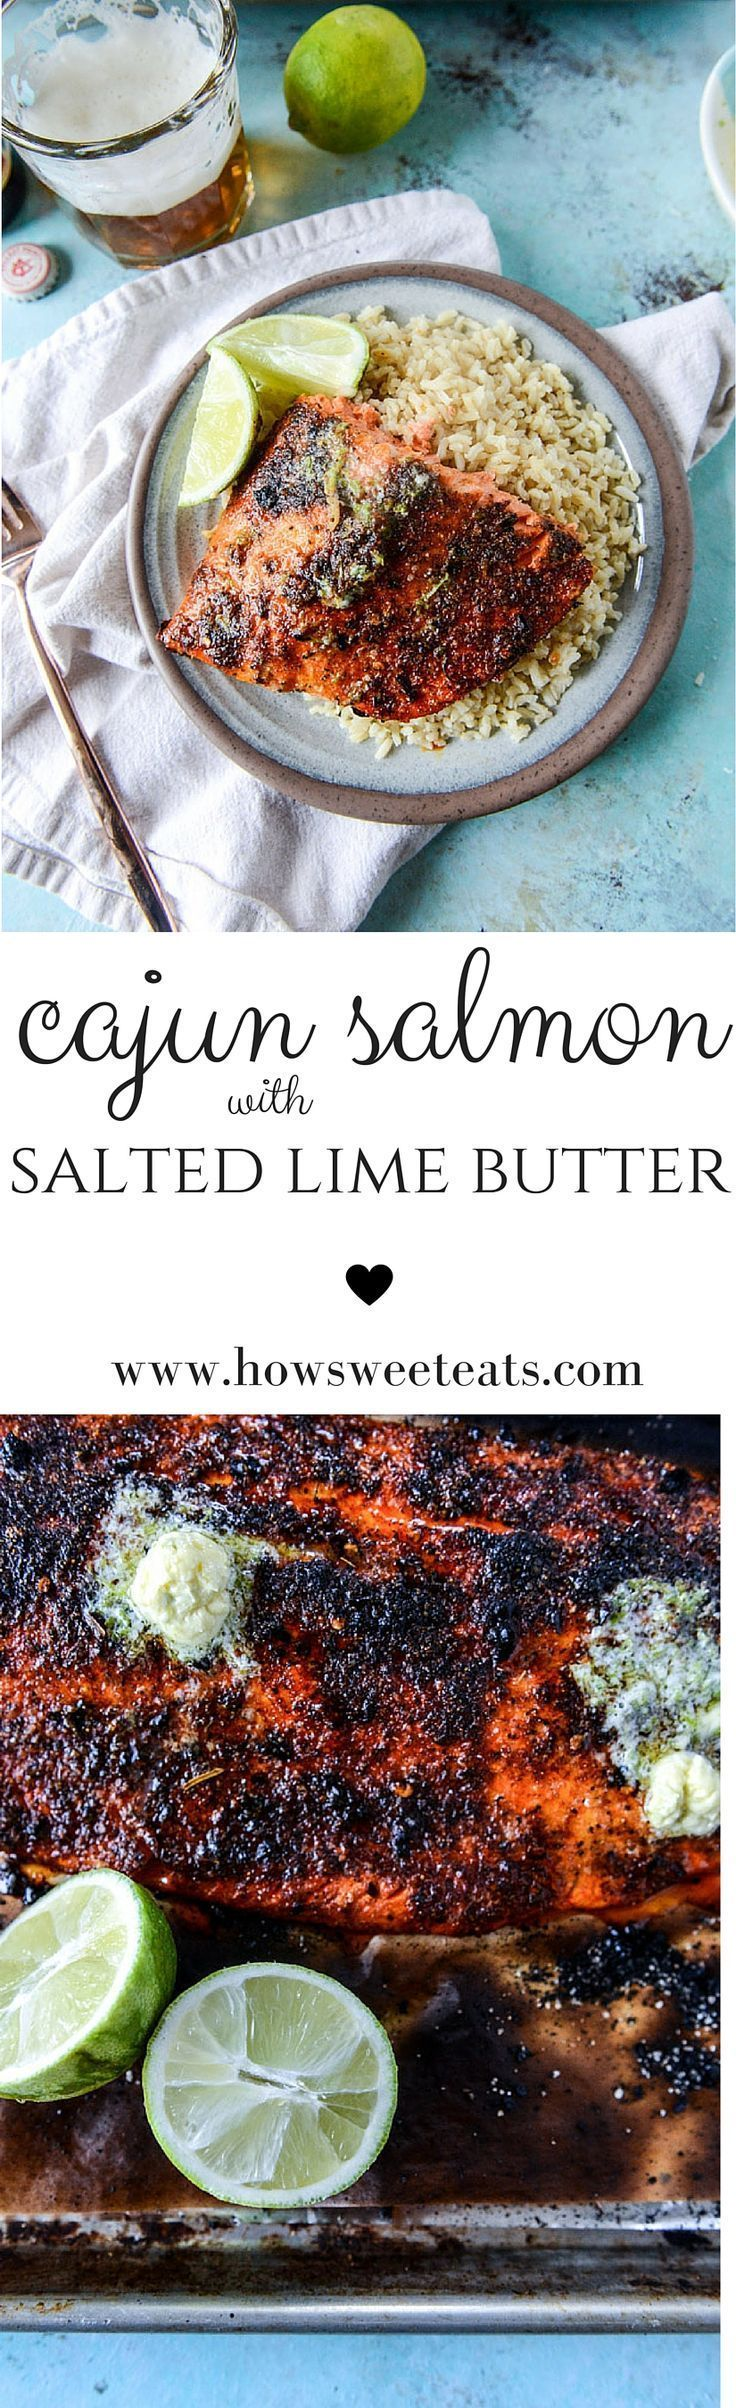 Cajun Salmon with Salted Lime Butter - only takes 30 minutes! by /howsweeteats/ I http://howsweeteats.com